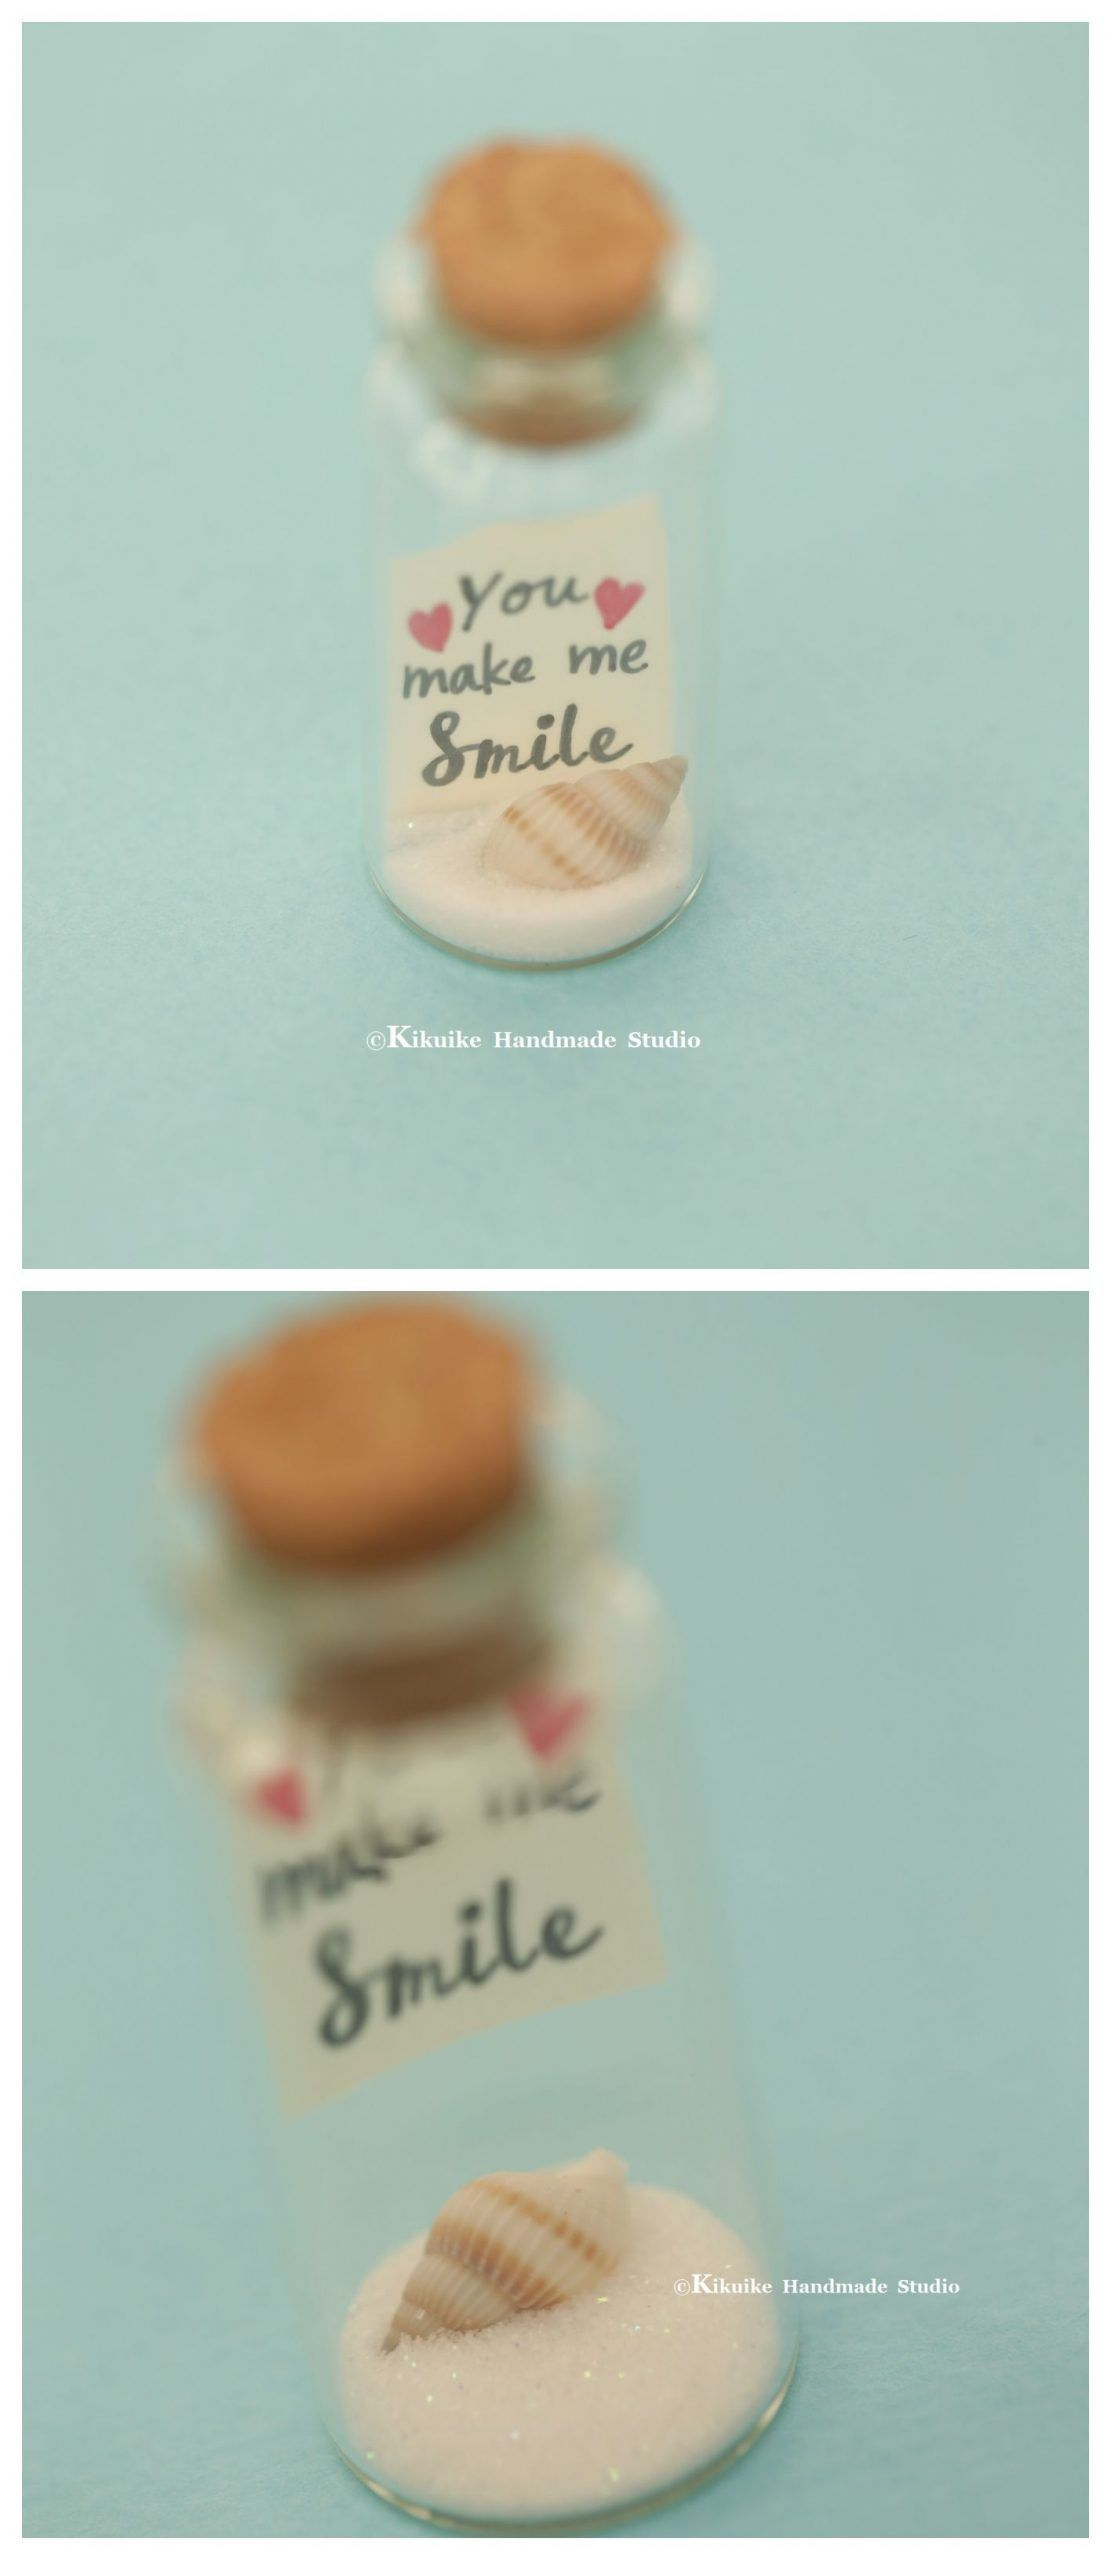 mini shell,You make me smile,Tiny message in a bottle,miniature,Personalised gift,lover gift,Valentine gift,Gift for her/him,Girlfriend gift#bottleminiaturepersonalised #gift #giftgift #giftlover #giftvalentine #herhimgirlfriend #message #mini #shellyou #smiletiny